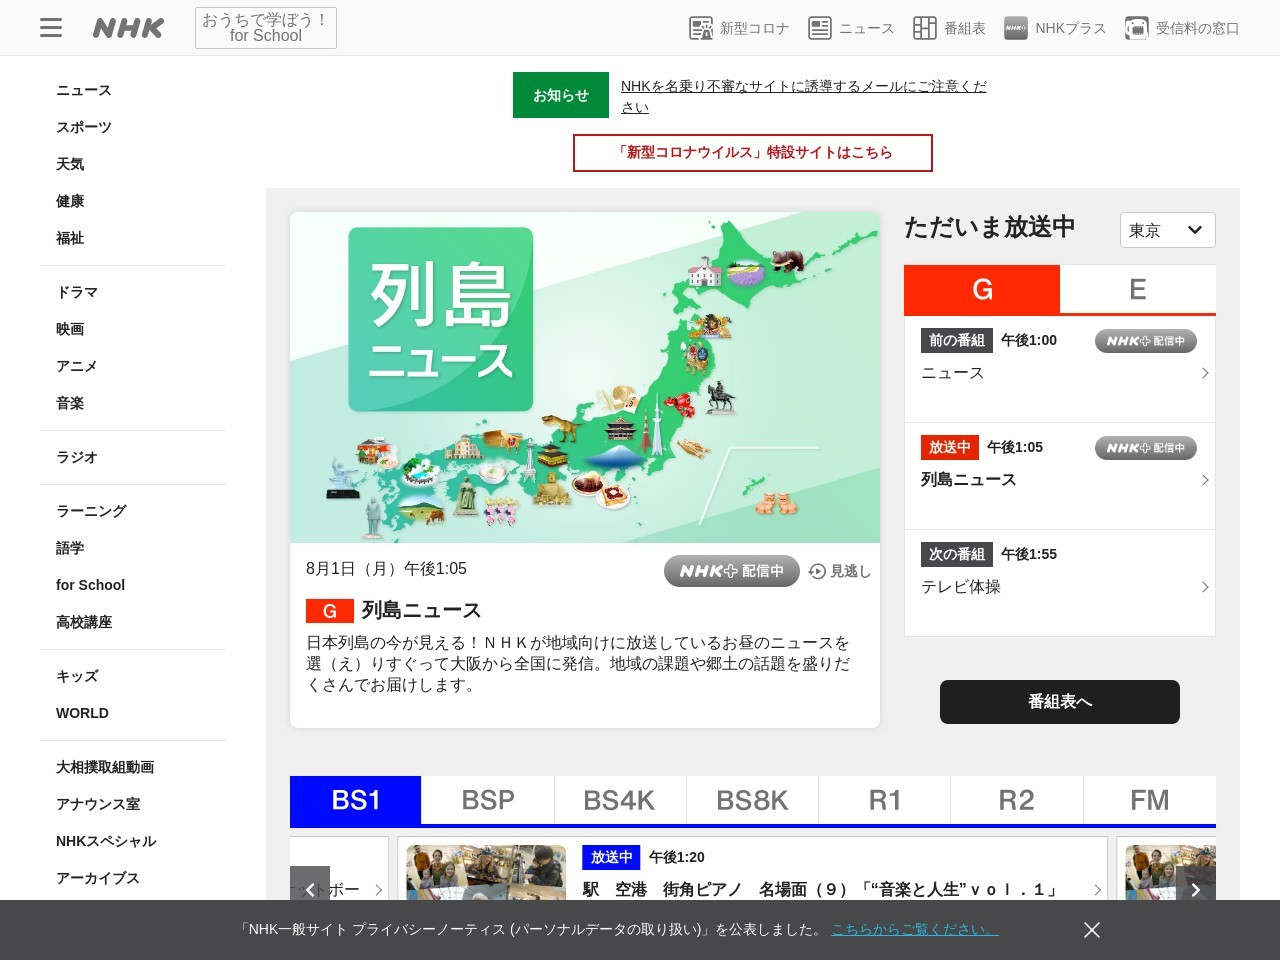 https://www3.nhk.or.jp/news/html/20190121/k10011784921000.html?utm_int=news_contents_news-main_003